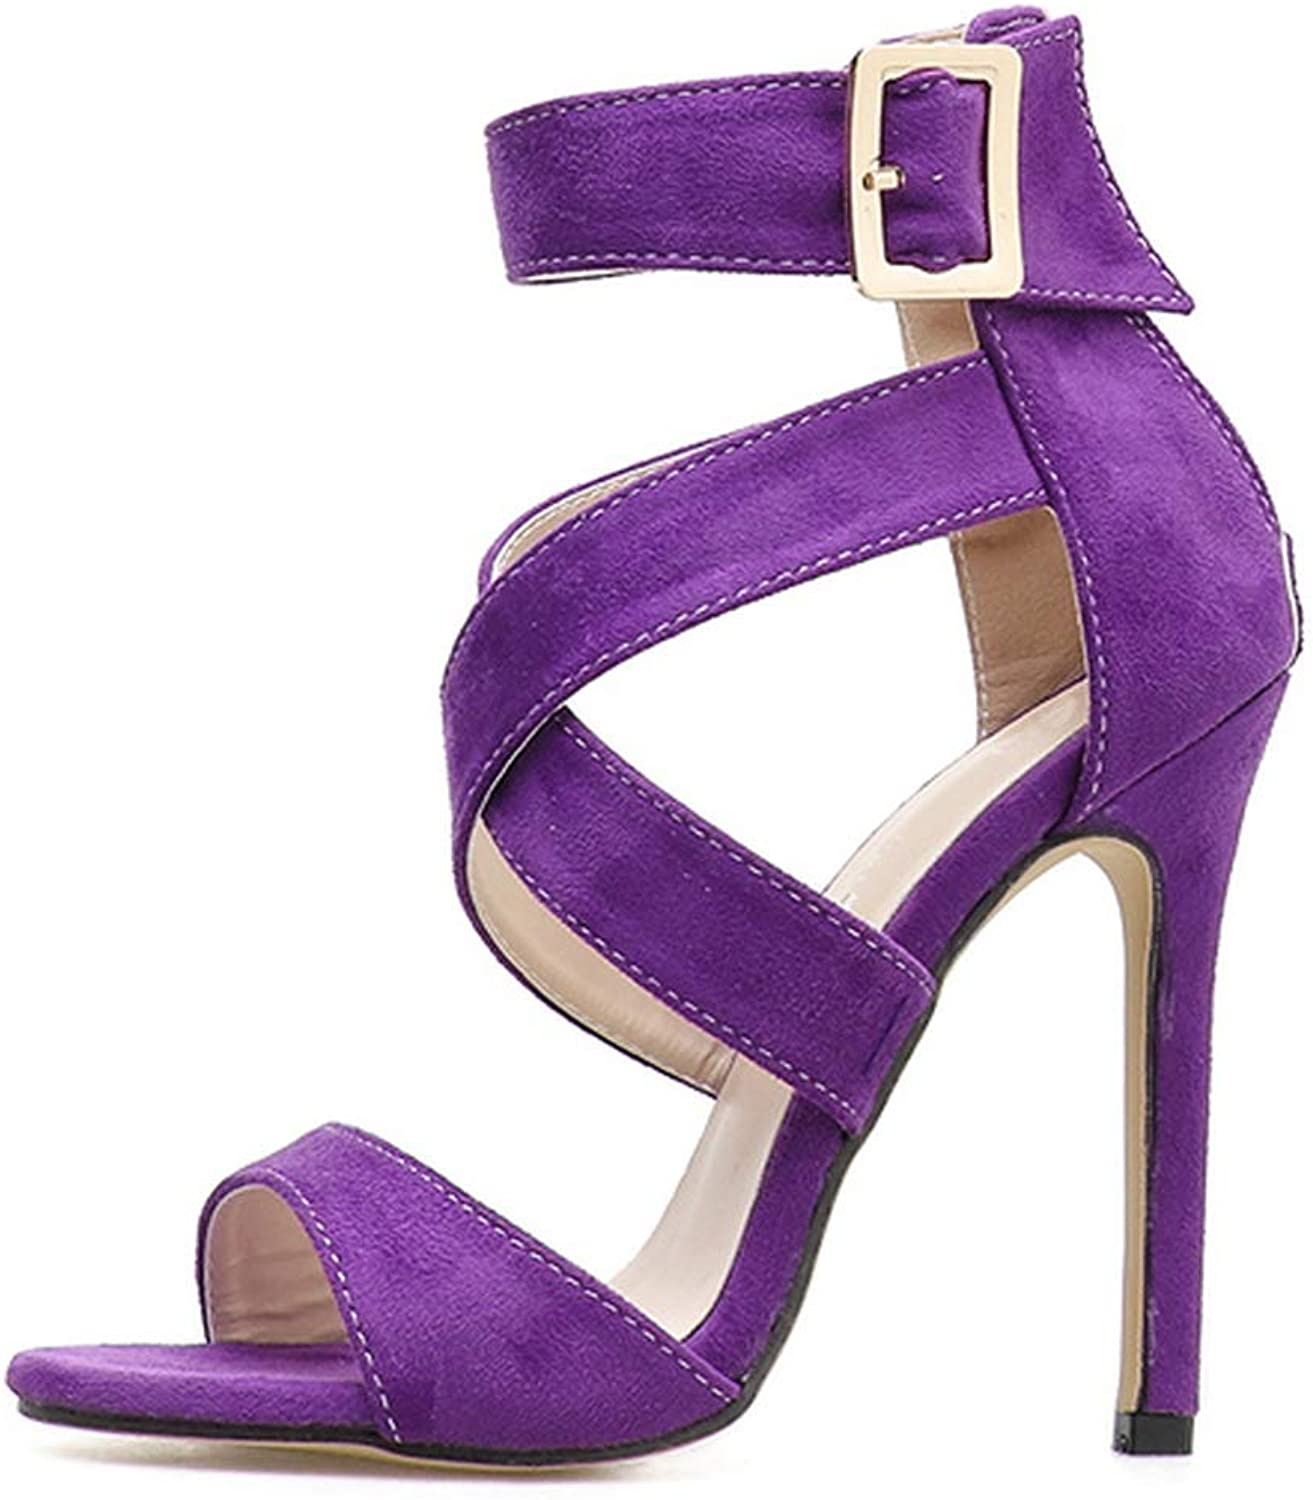 Meet at Summer-heeled samndals High Heels Sandals Concise Solid Flock PU Open Toe Buckle Sexy Women's Party Sandal